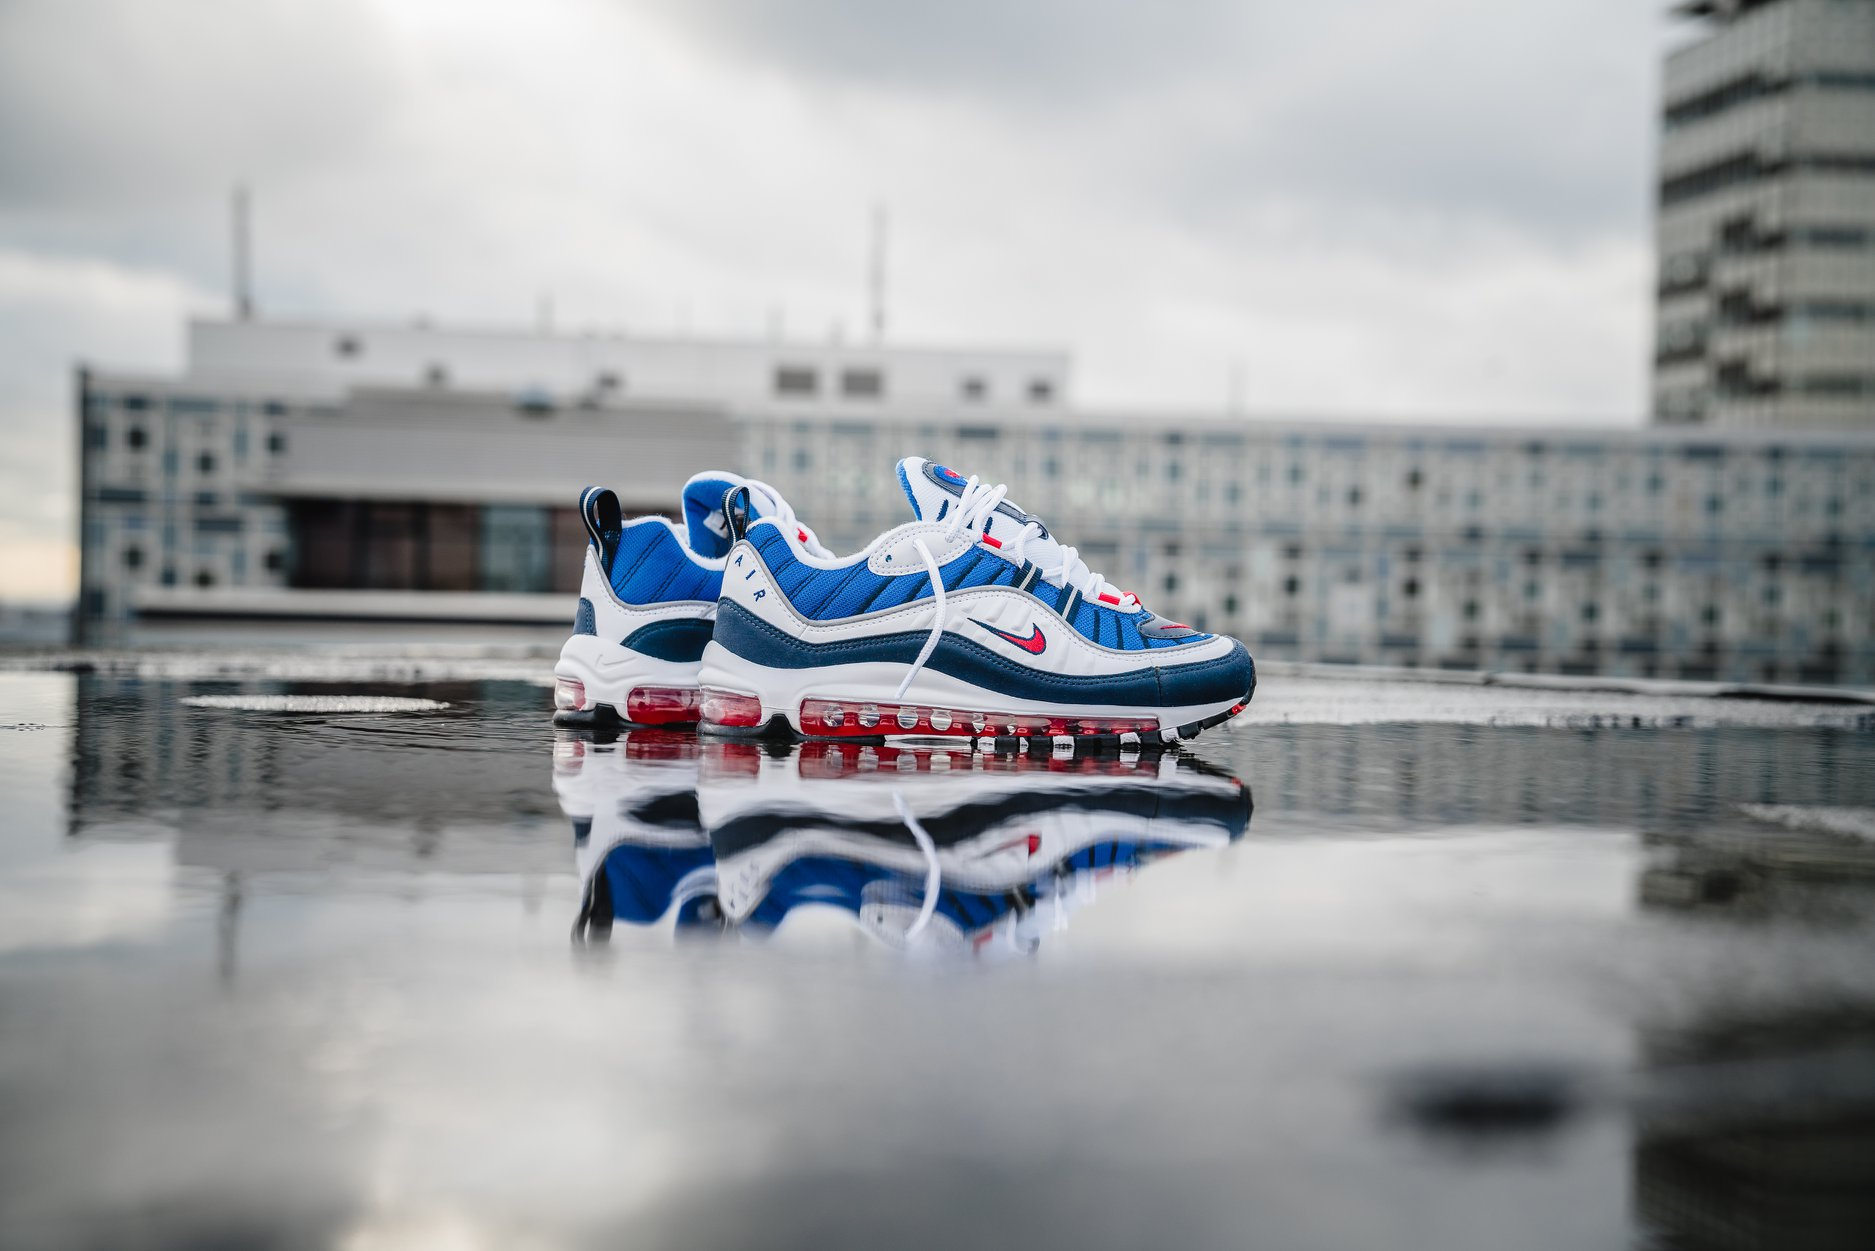 """official photos 137dd 470fc Nike Sportswear will be re-releasing the Gundam Nike Air Max 98 for the  20th anniversary of the 98′ series. Being dubbed """"Gundam"""" for having color  ..."""